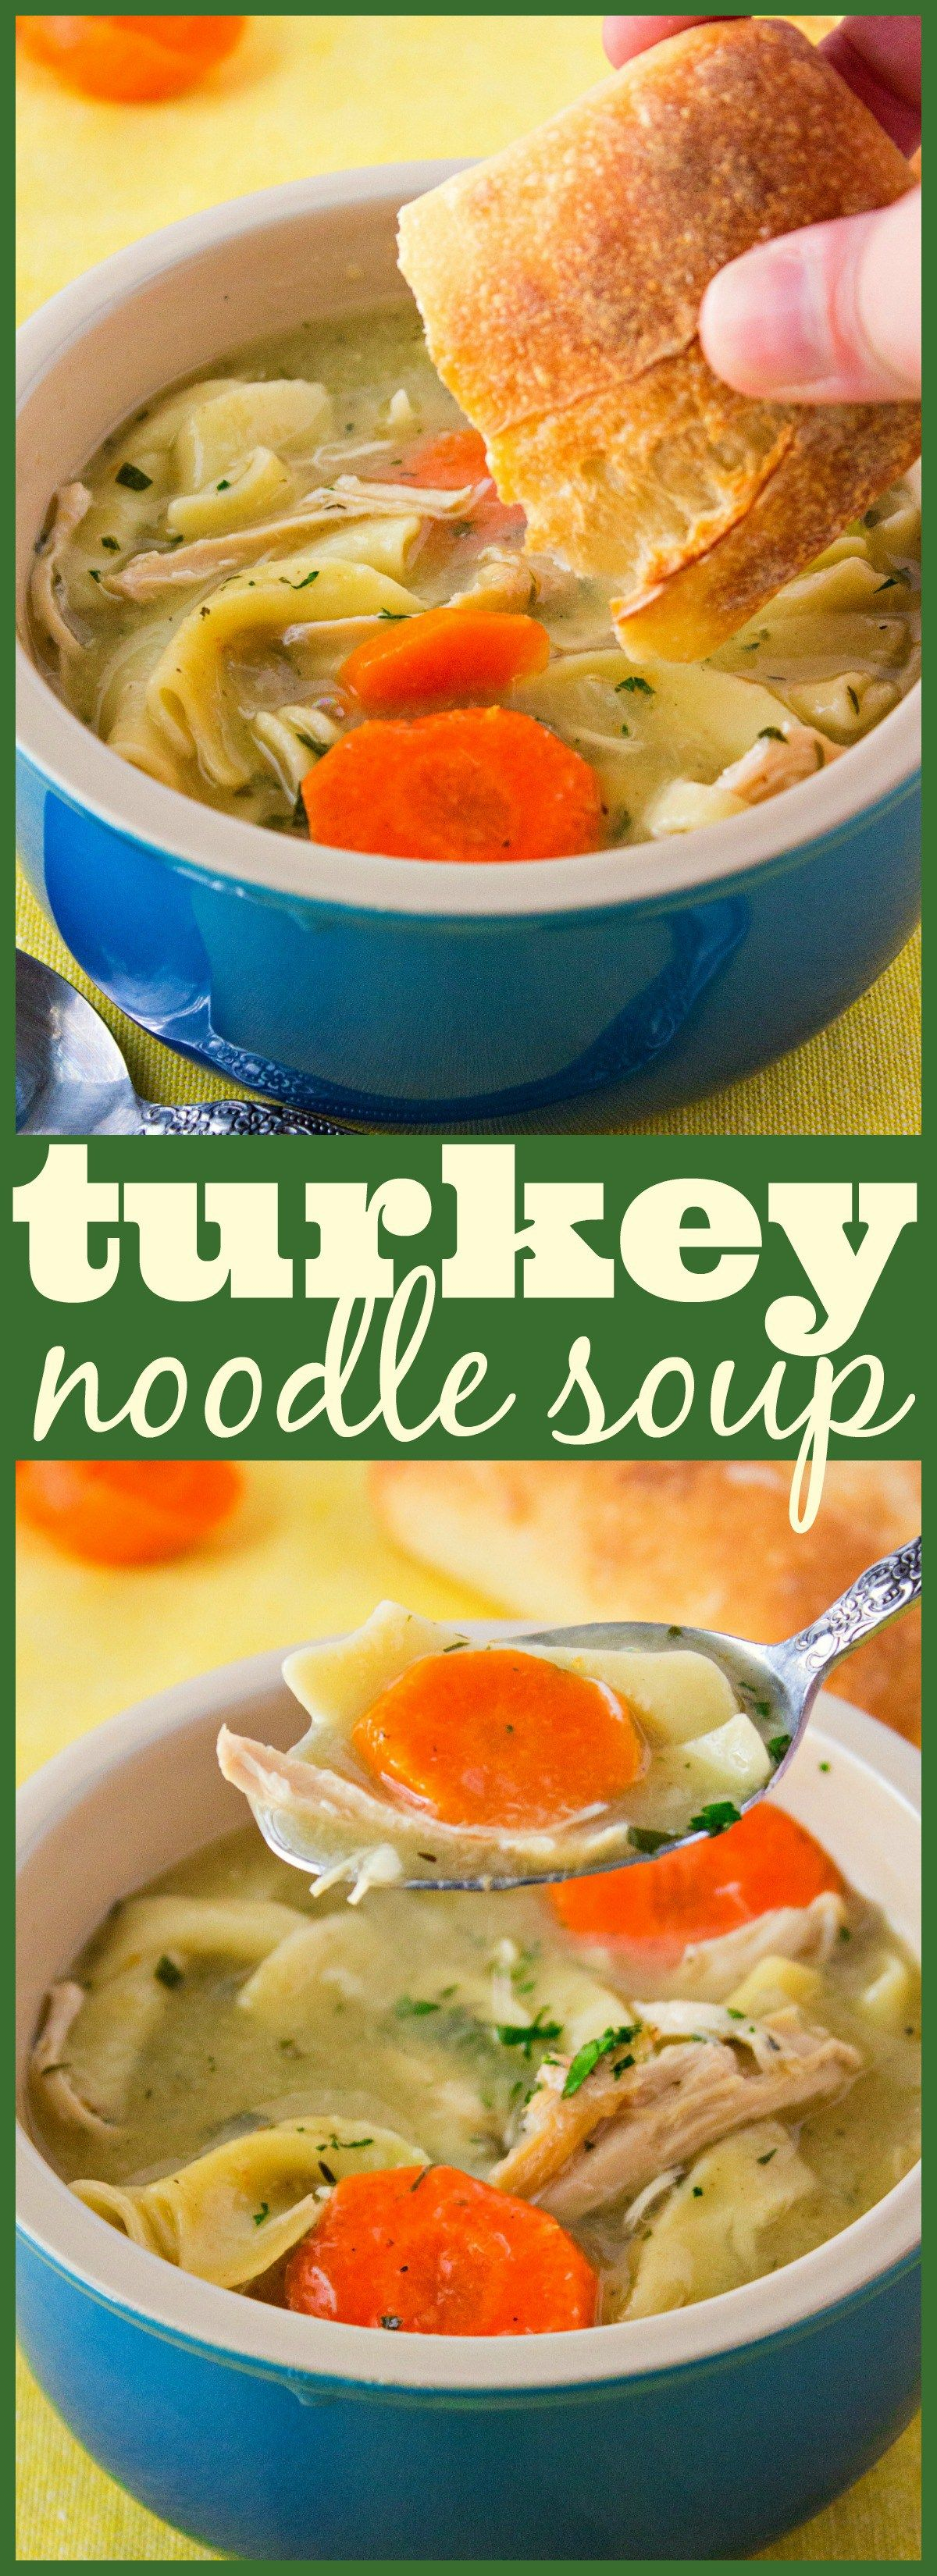 A super easy turkey noodle soup to warm you up on cold